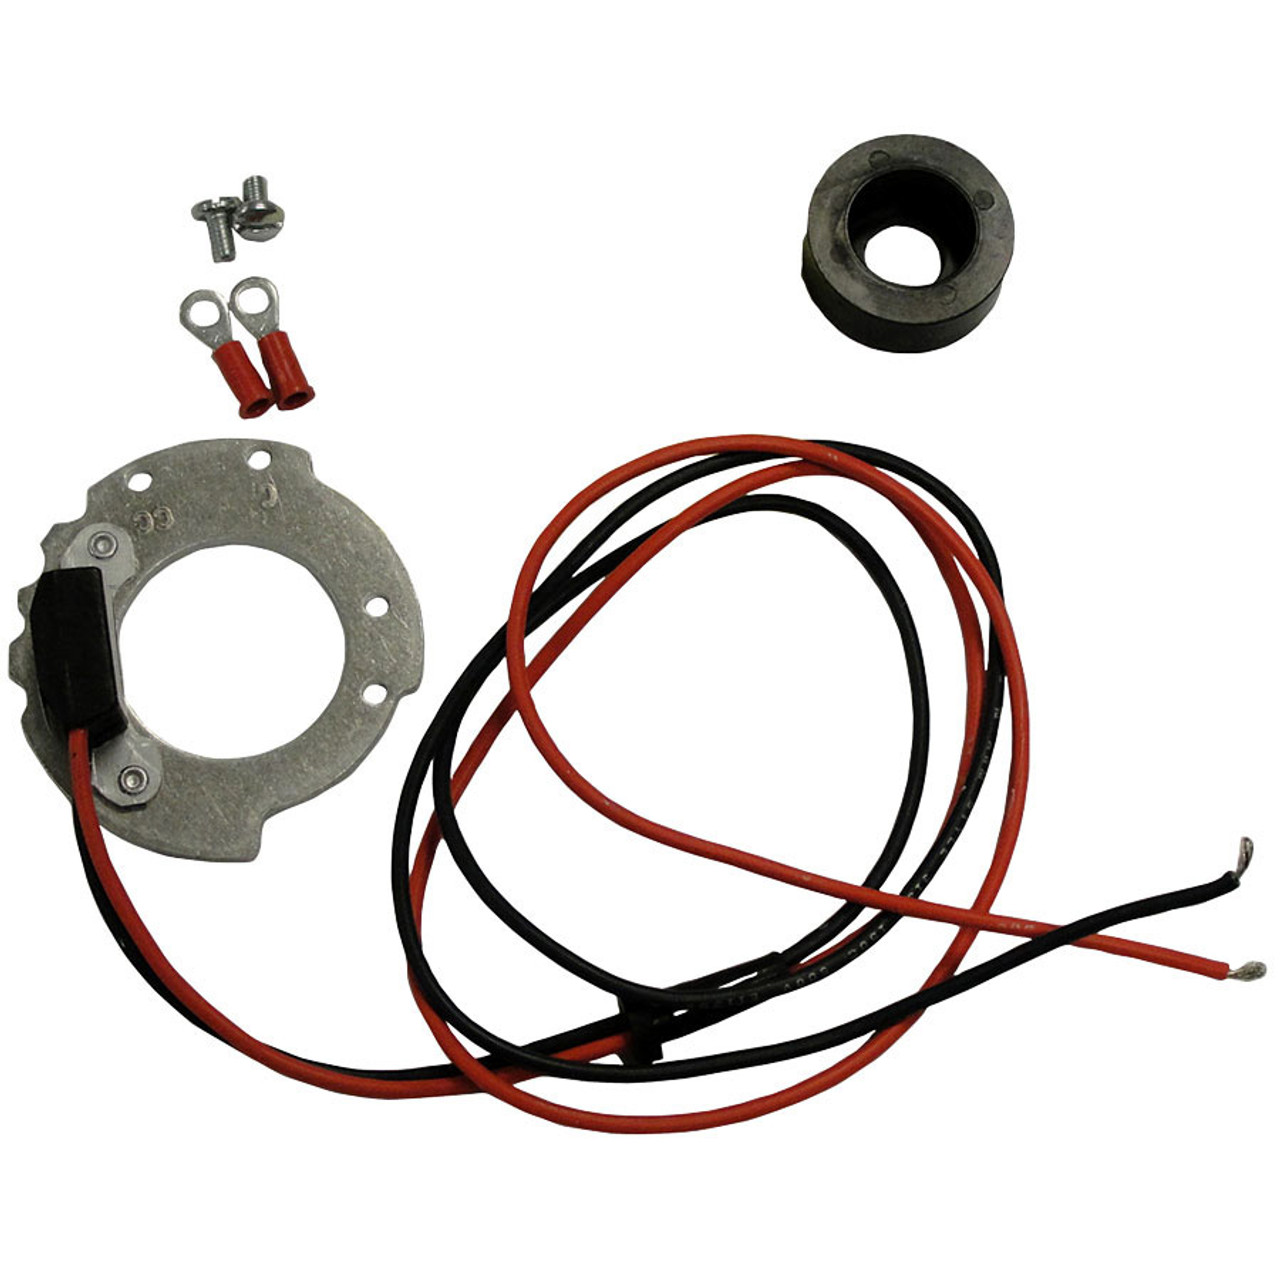 Ford Electronic Ignition Module for Side Mount Models